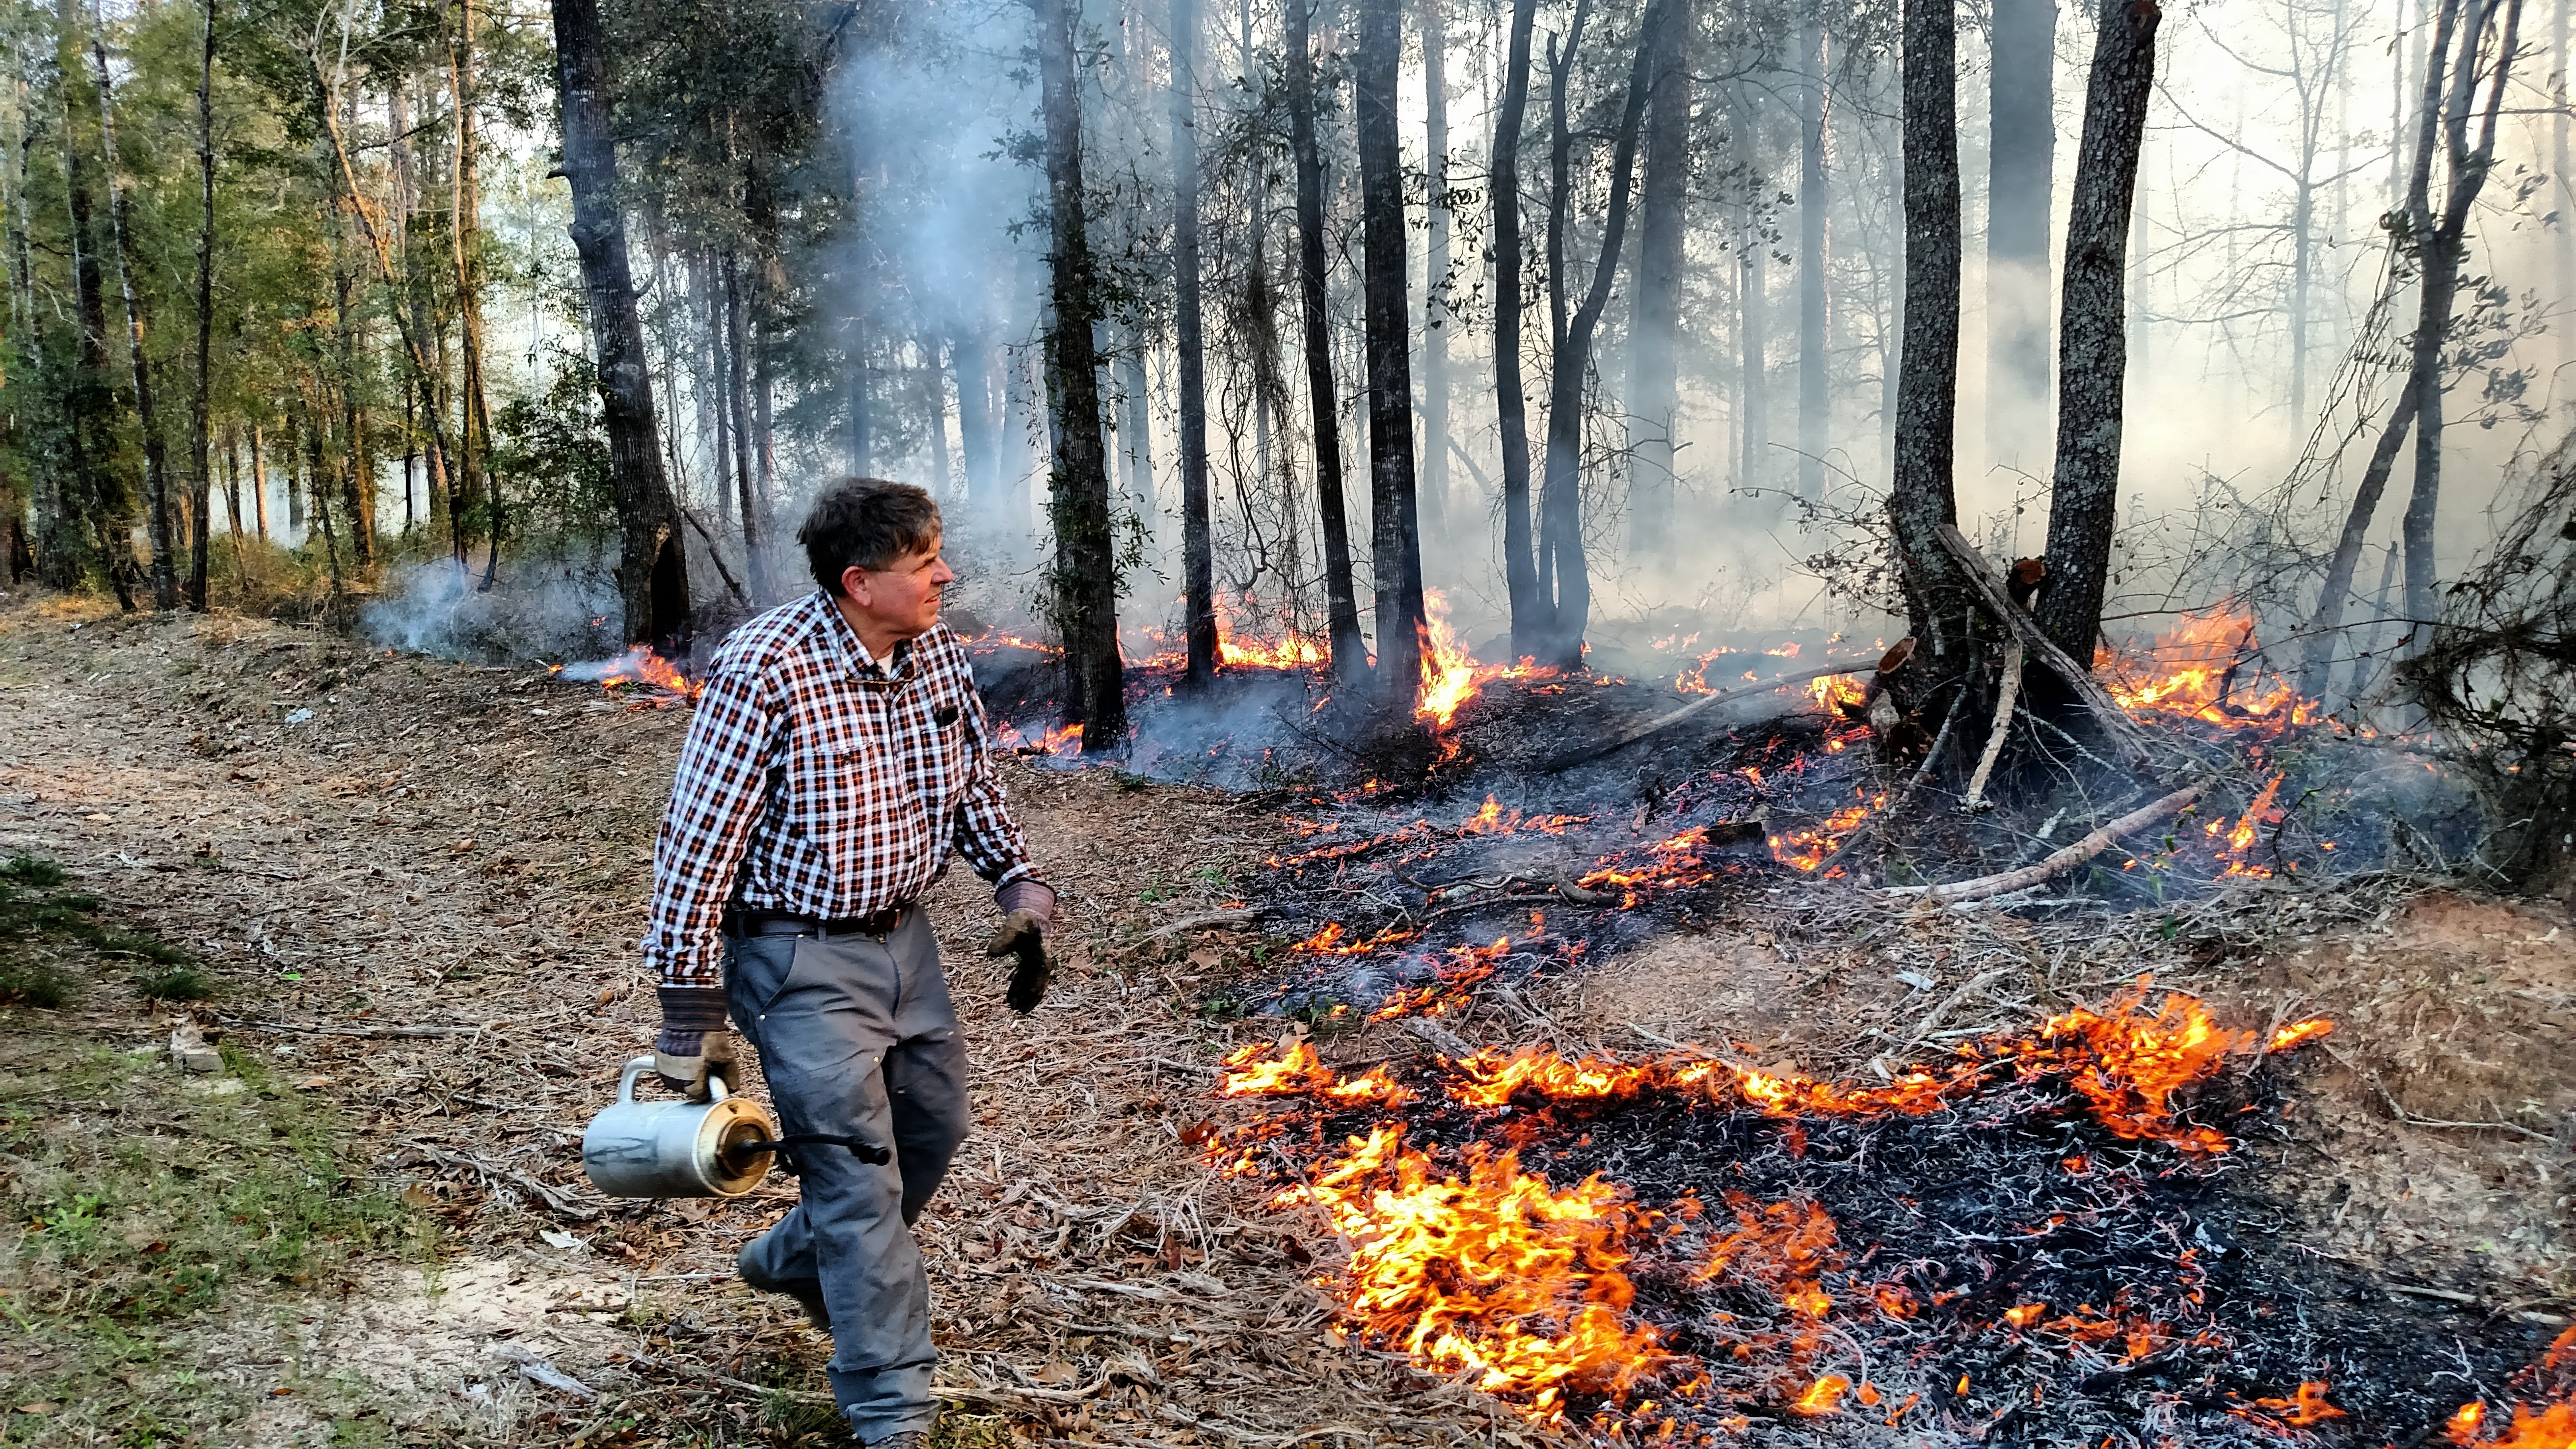 Longleaf pine forests depend on fire to stay healthy. Through prescribed fire, landowners introduce this natural process in forests.